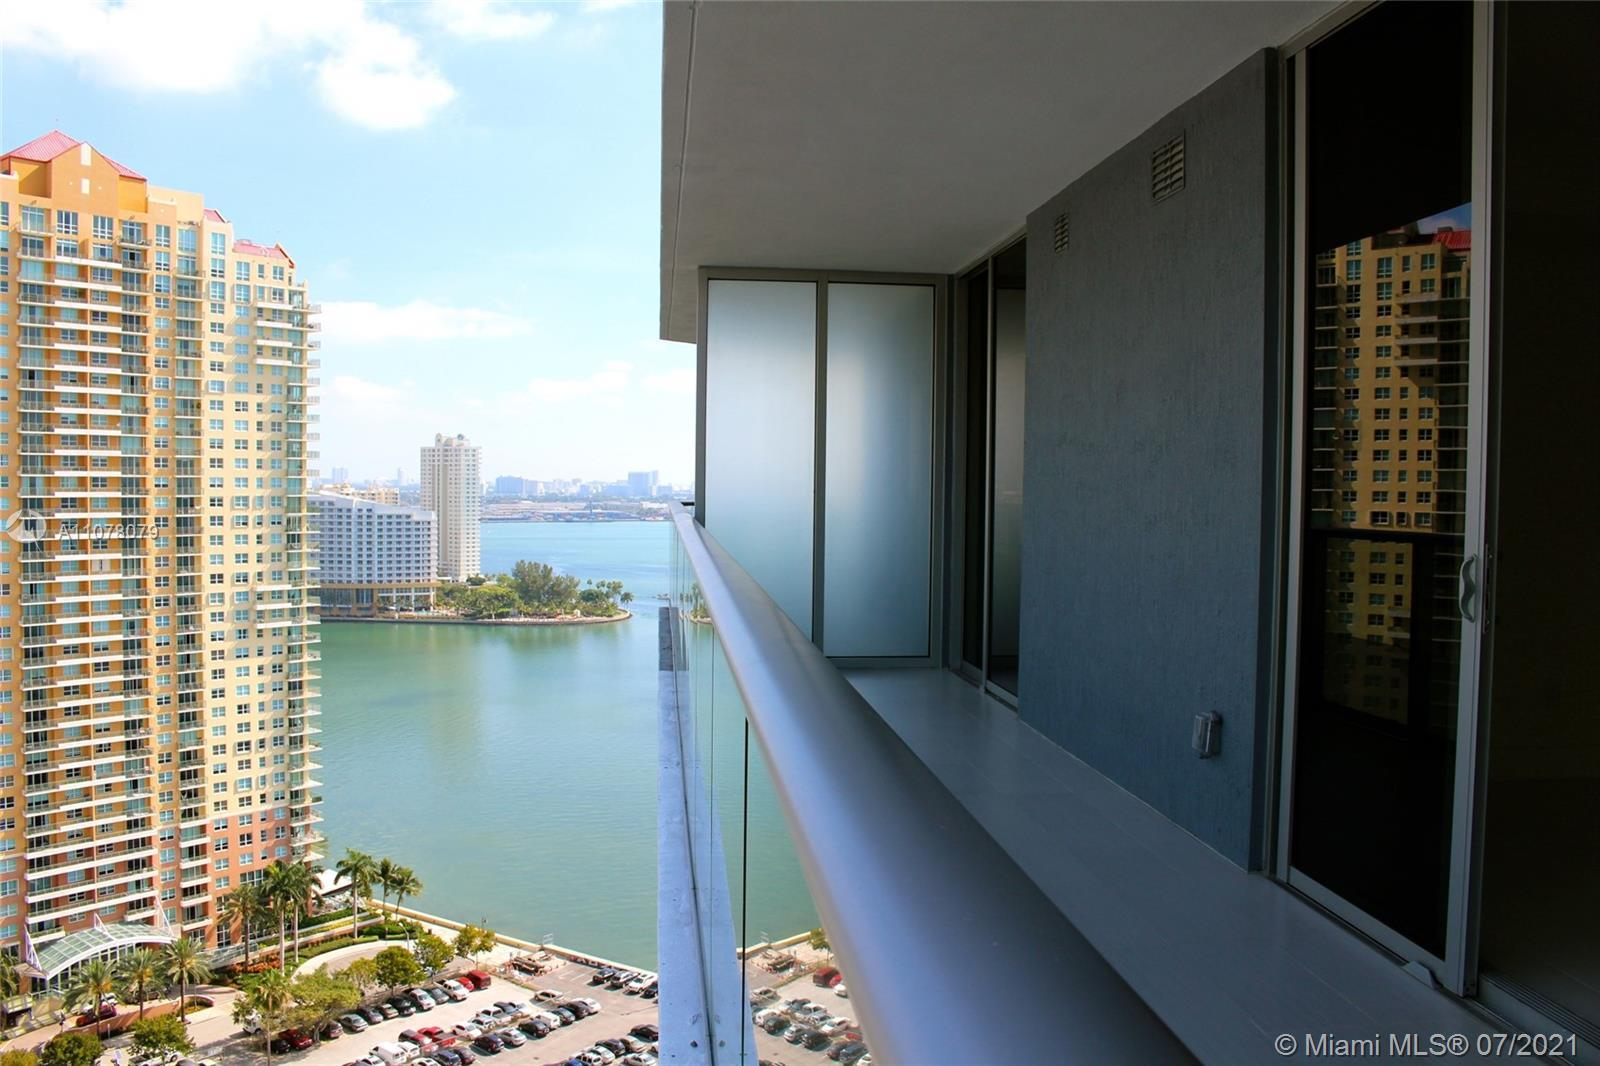 Come and live in this sophisticated condo in Miami's most desirable neighborhood. Spectacular 1BR/1.